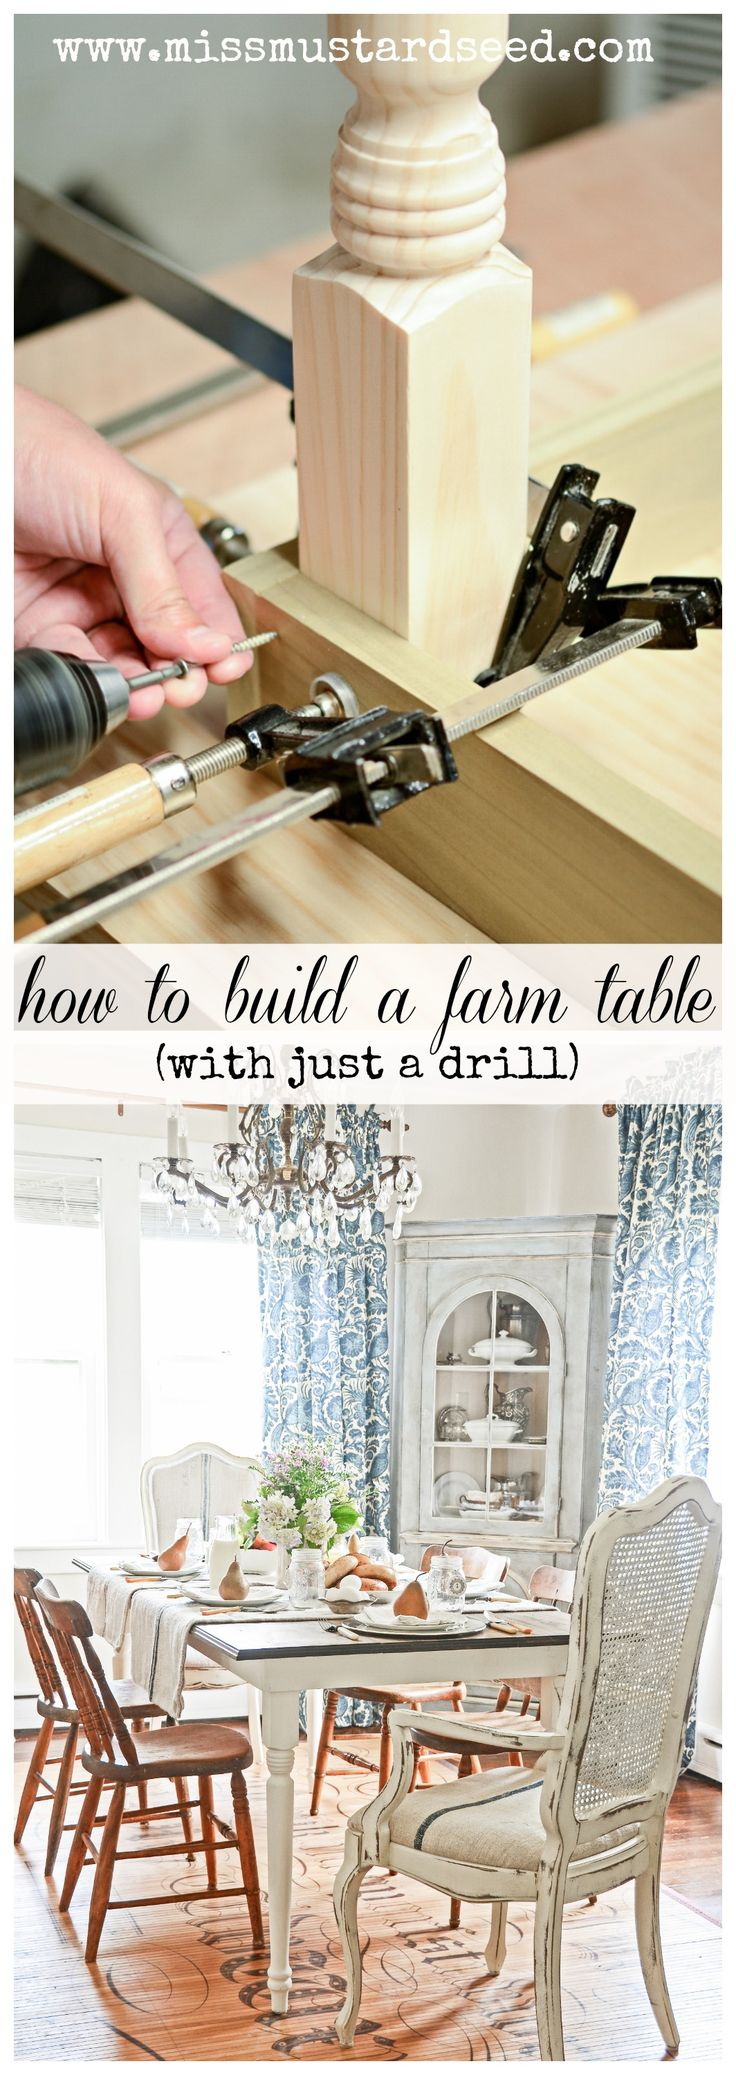 Diy: How To Build A Farm Table  Easiest Tutorial For Building A Table